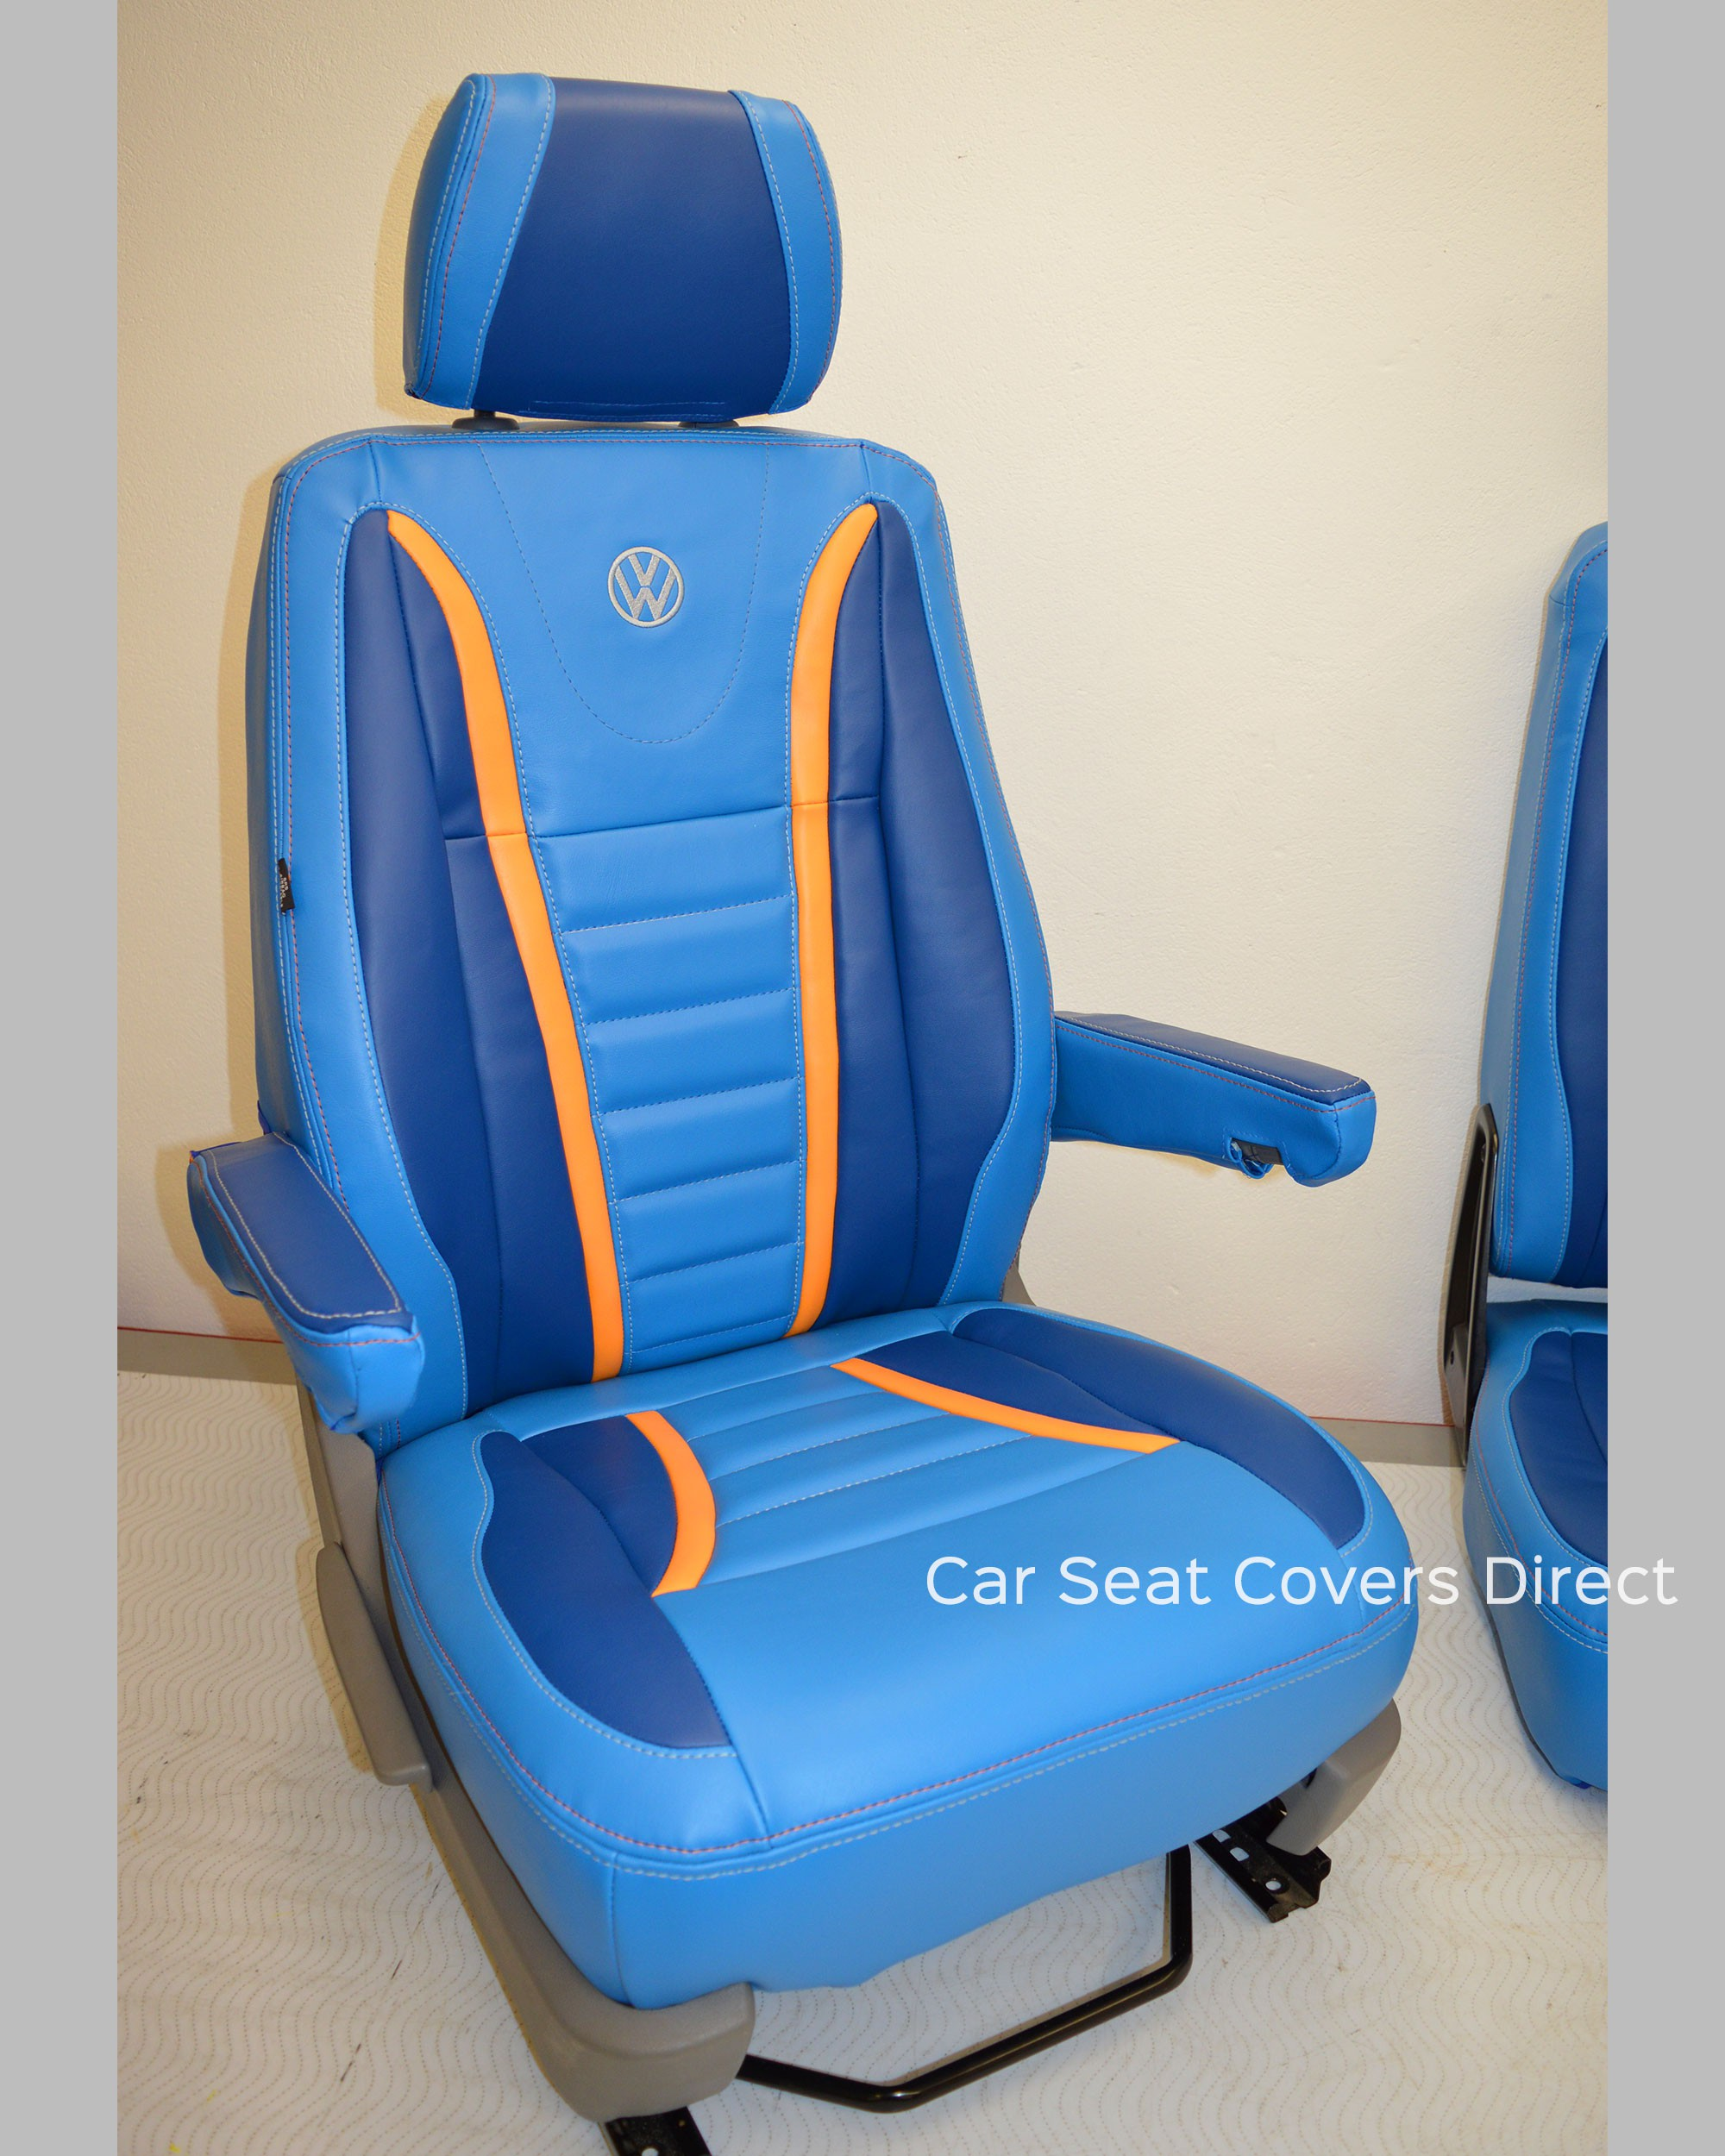 Volkswagen VW Transporter T5 Raceline Seat Covers Car Seat